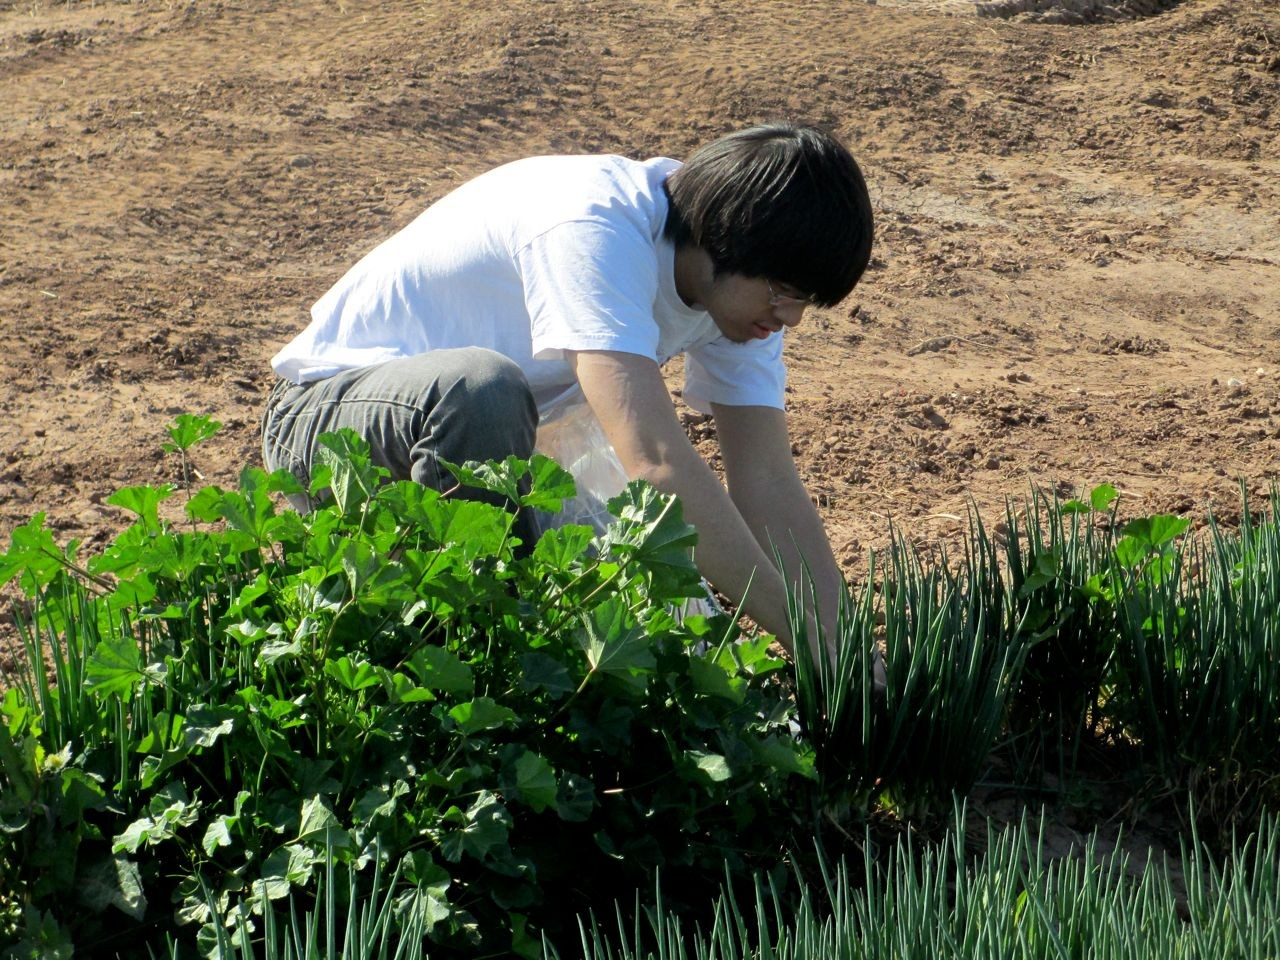 Lance Harvests Green Onions